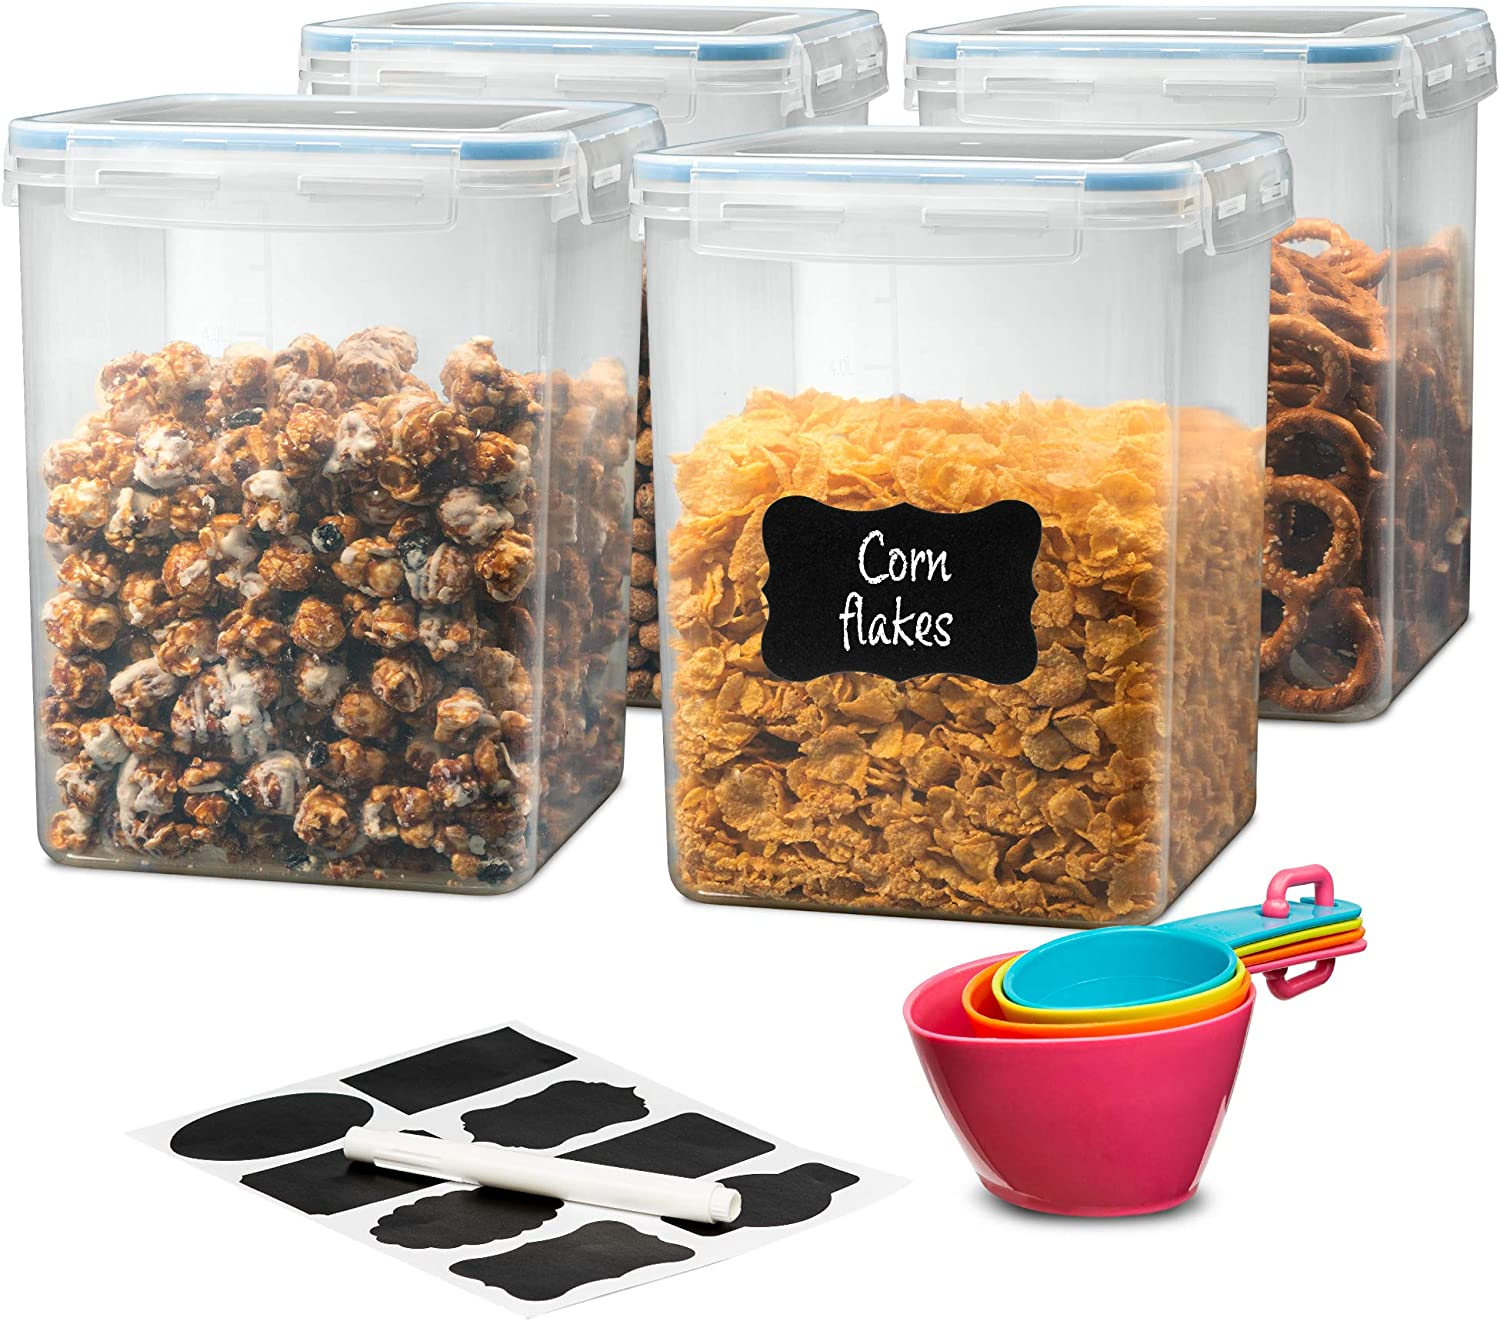 Flour Container, Pantry Organizer Set- 4 Pcs Large Airtight Food Storage Containers with Lids (175 Oz), Measuring Cups, Labels, and Marker - BPA Free Plastic, Clear Storage Bins for Flour, Rice, Sugar